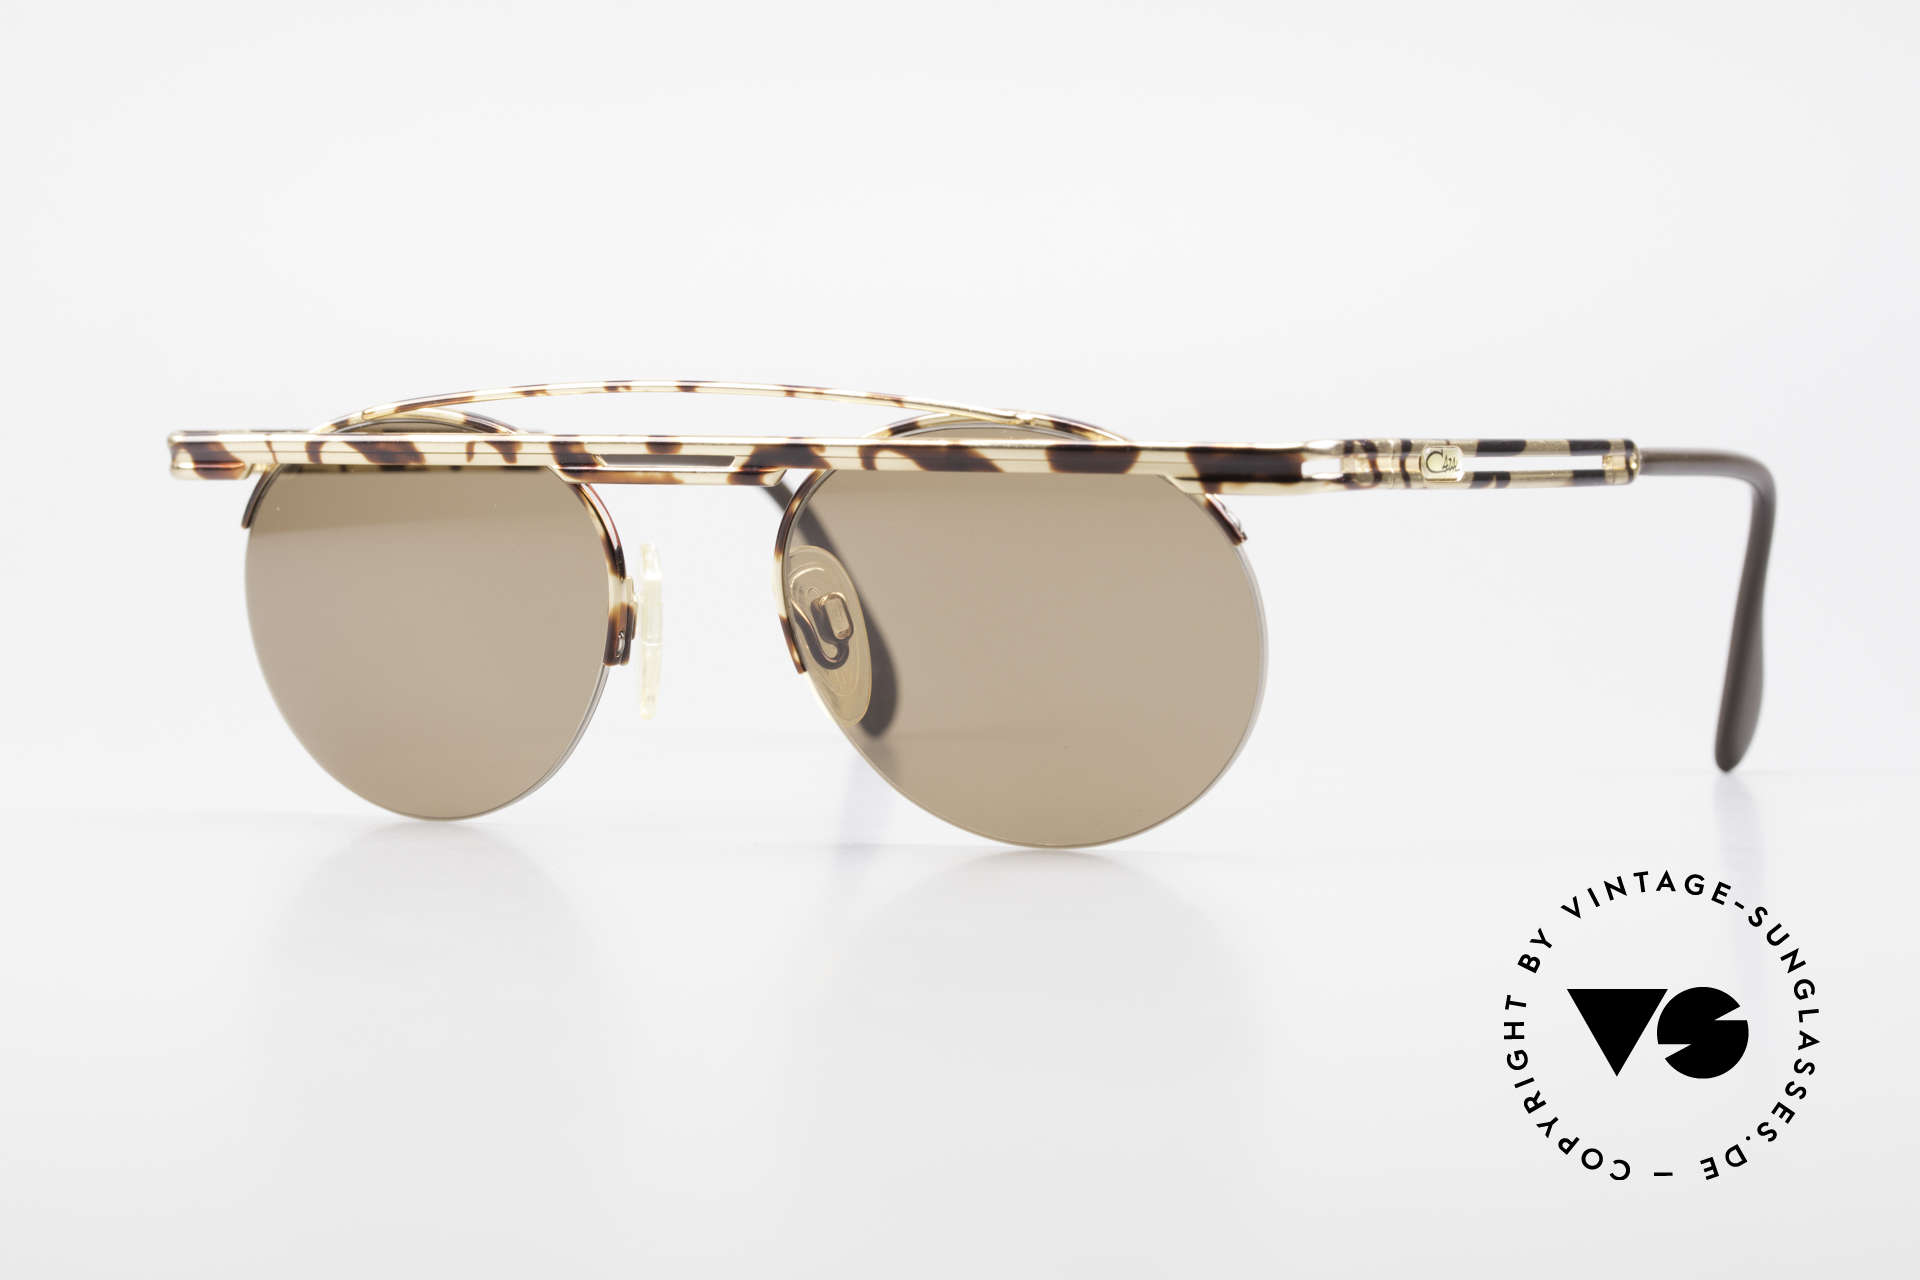 Cazal 748 Rare Vintage No Retro Shades, interesting Cazal vintage sunglasses-frame from 1997/98, Made for Men and Women